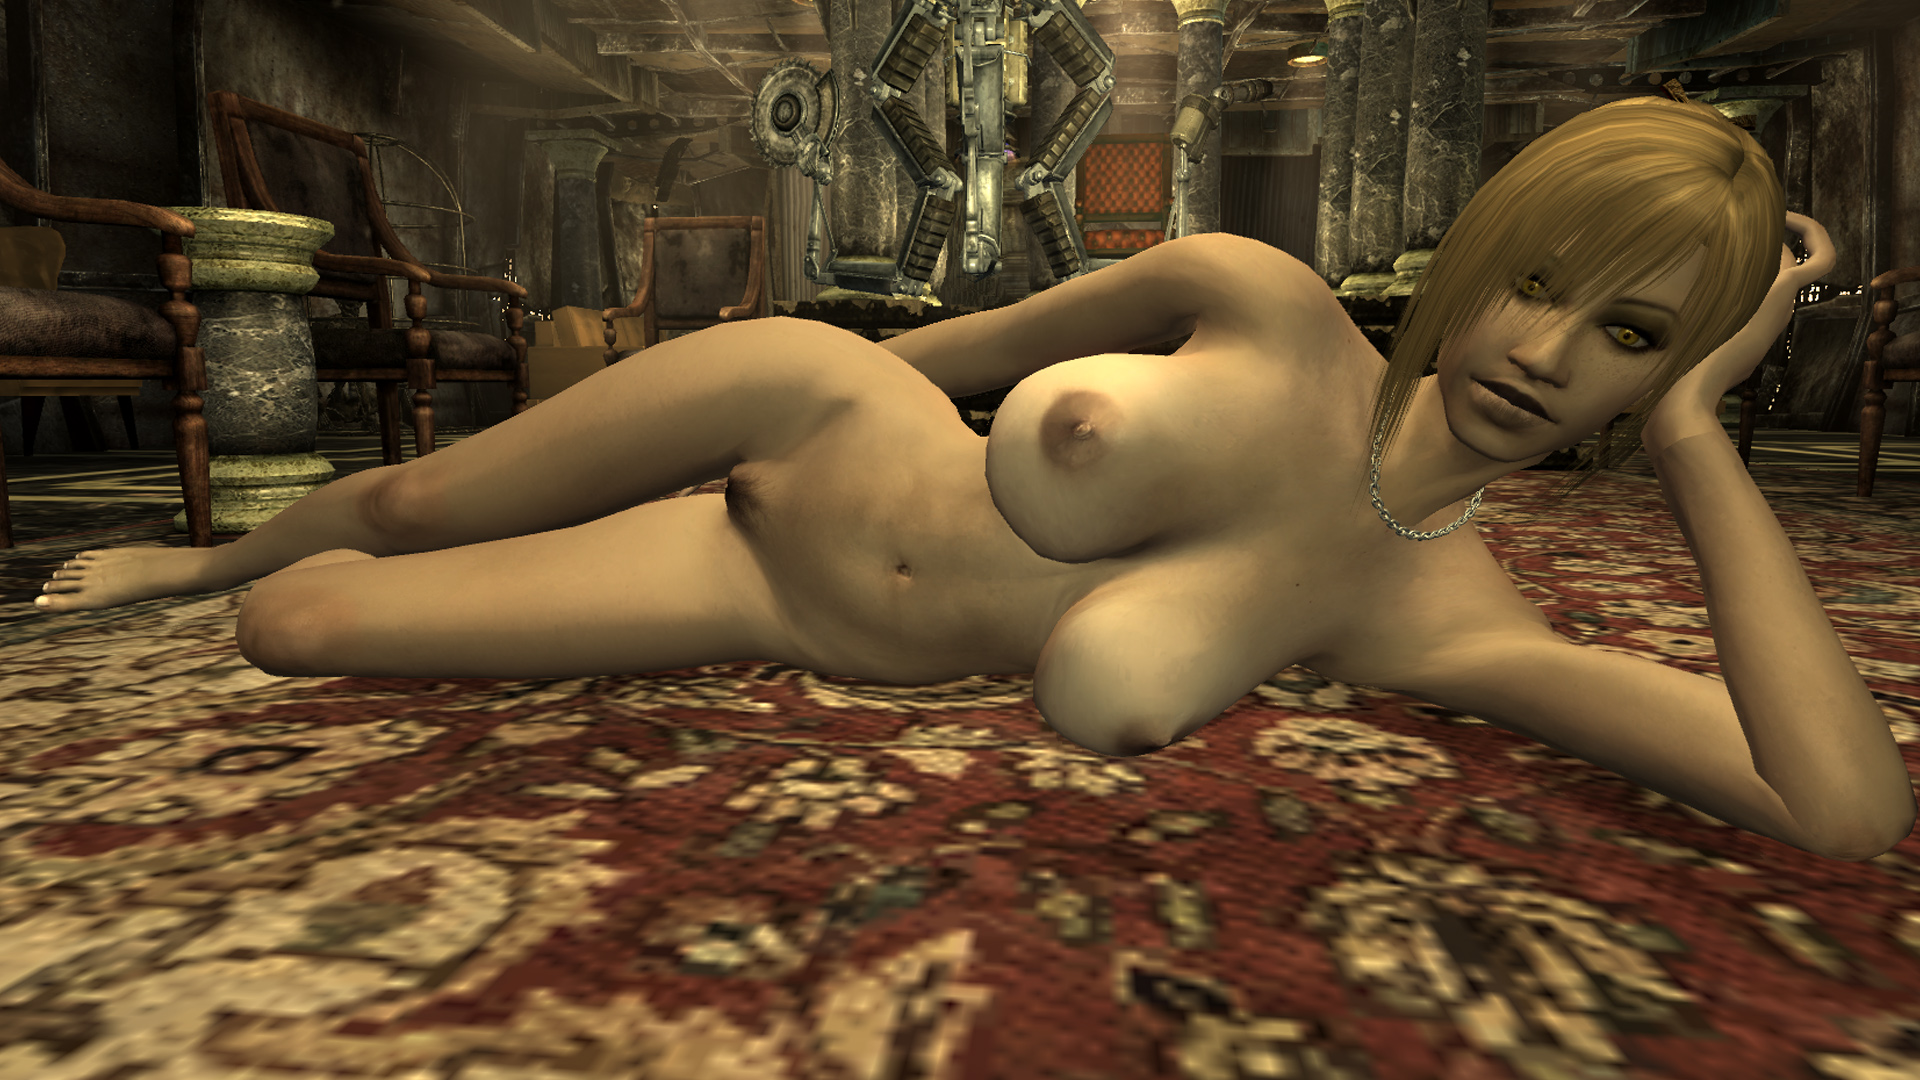 Fallout new vegas sex porn mod porn videos